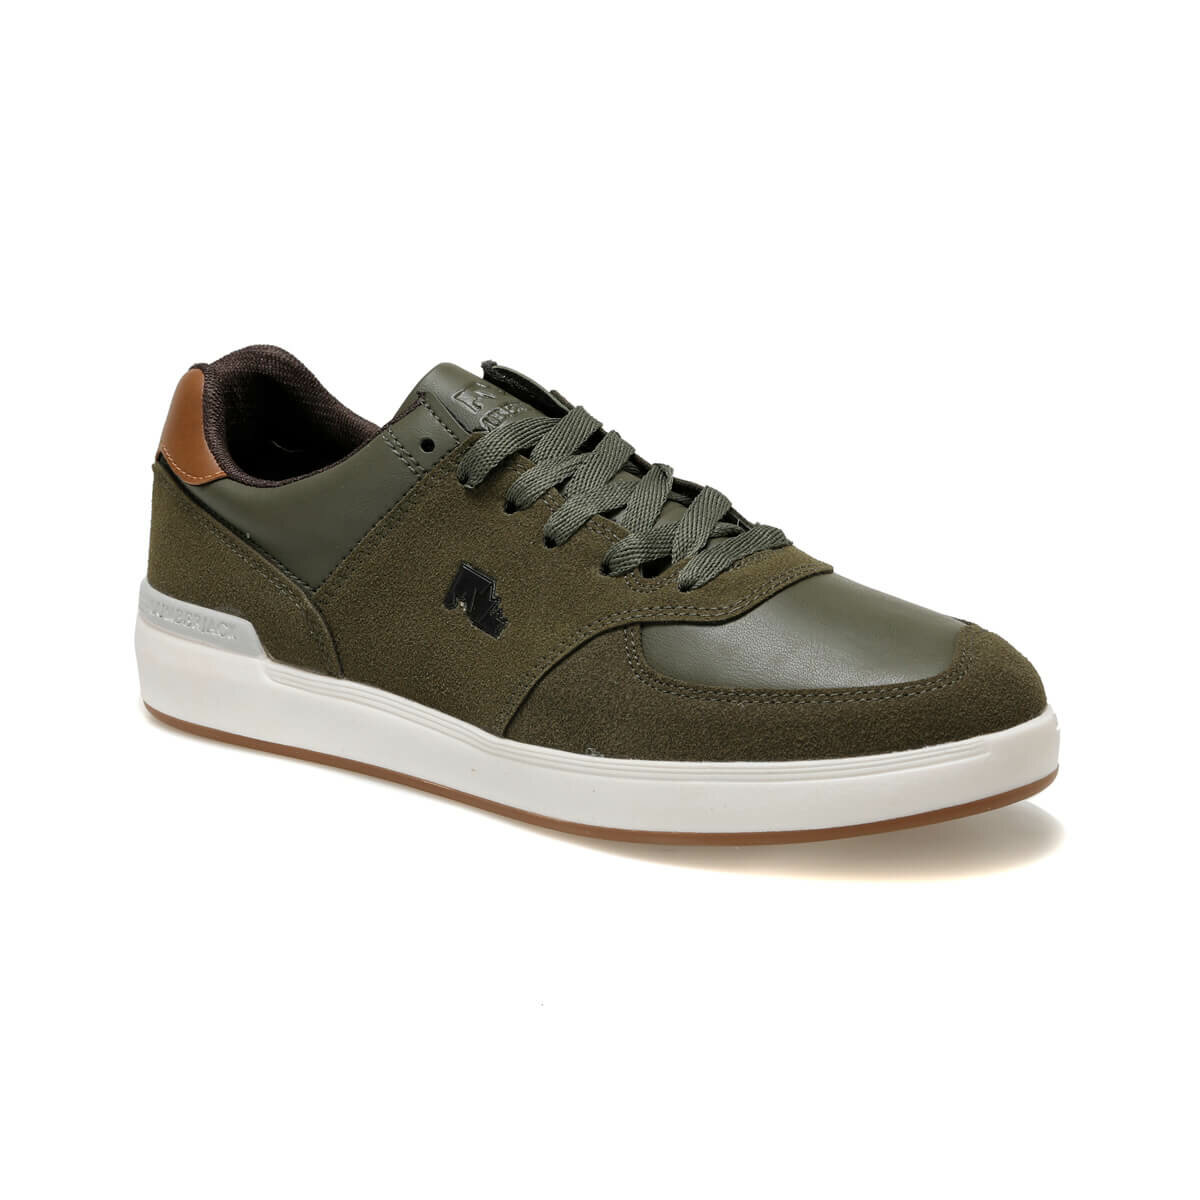 FLO ULTRON 9PR Khaki Men 'S Sneaker Shoes LUMBERJACK